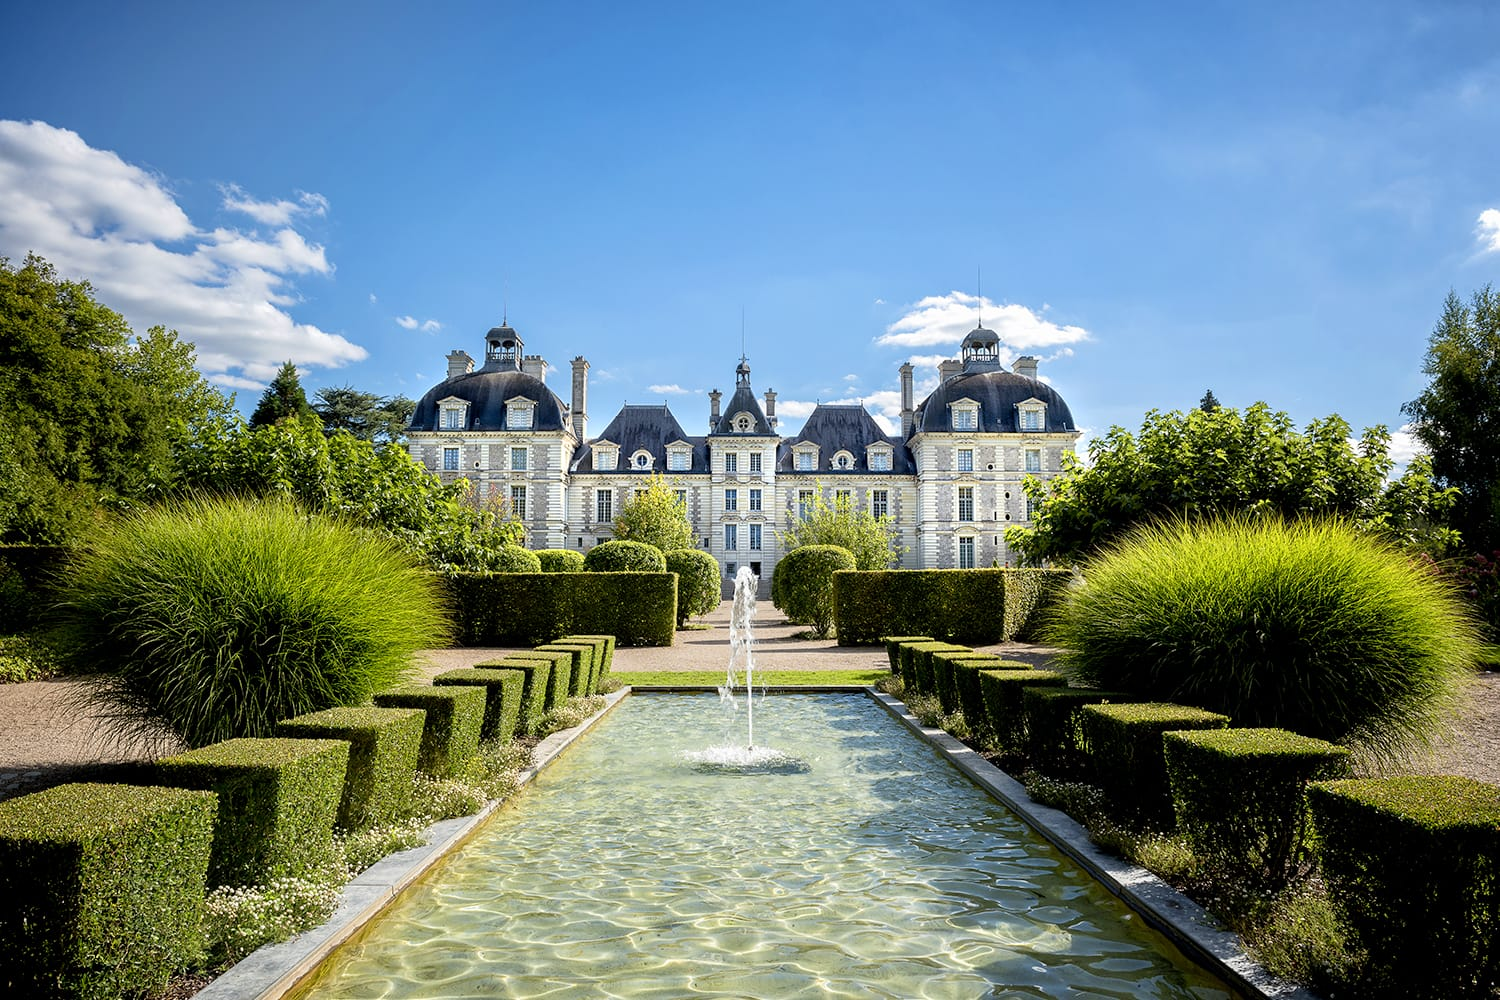 Chateau de Cheverny in the Loire Valley, France